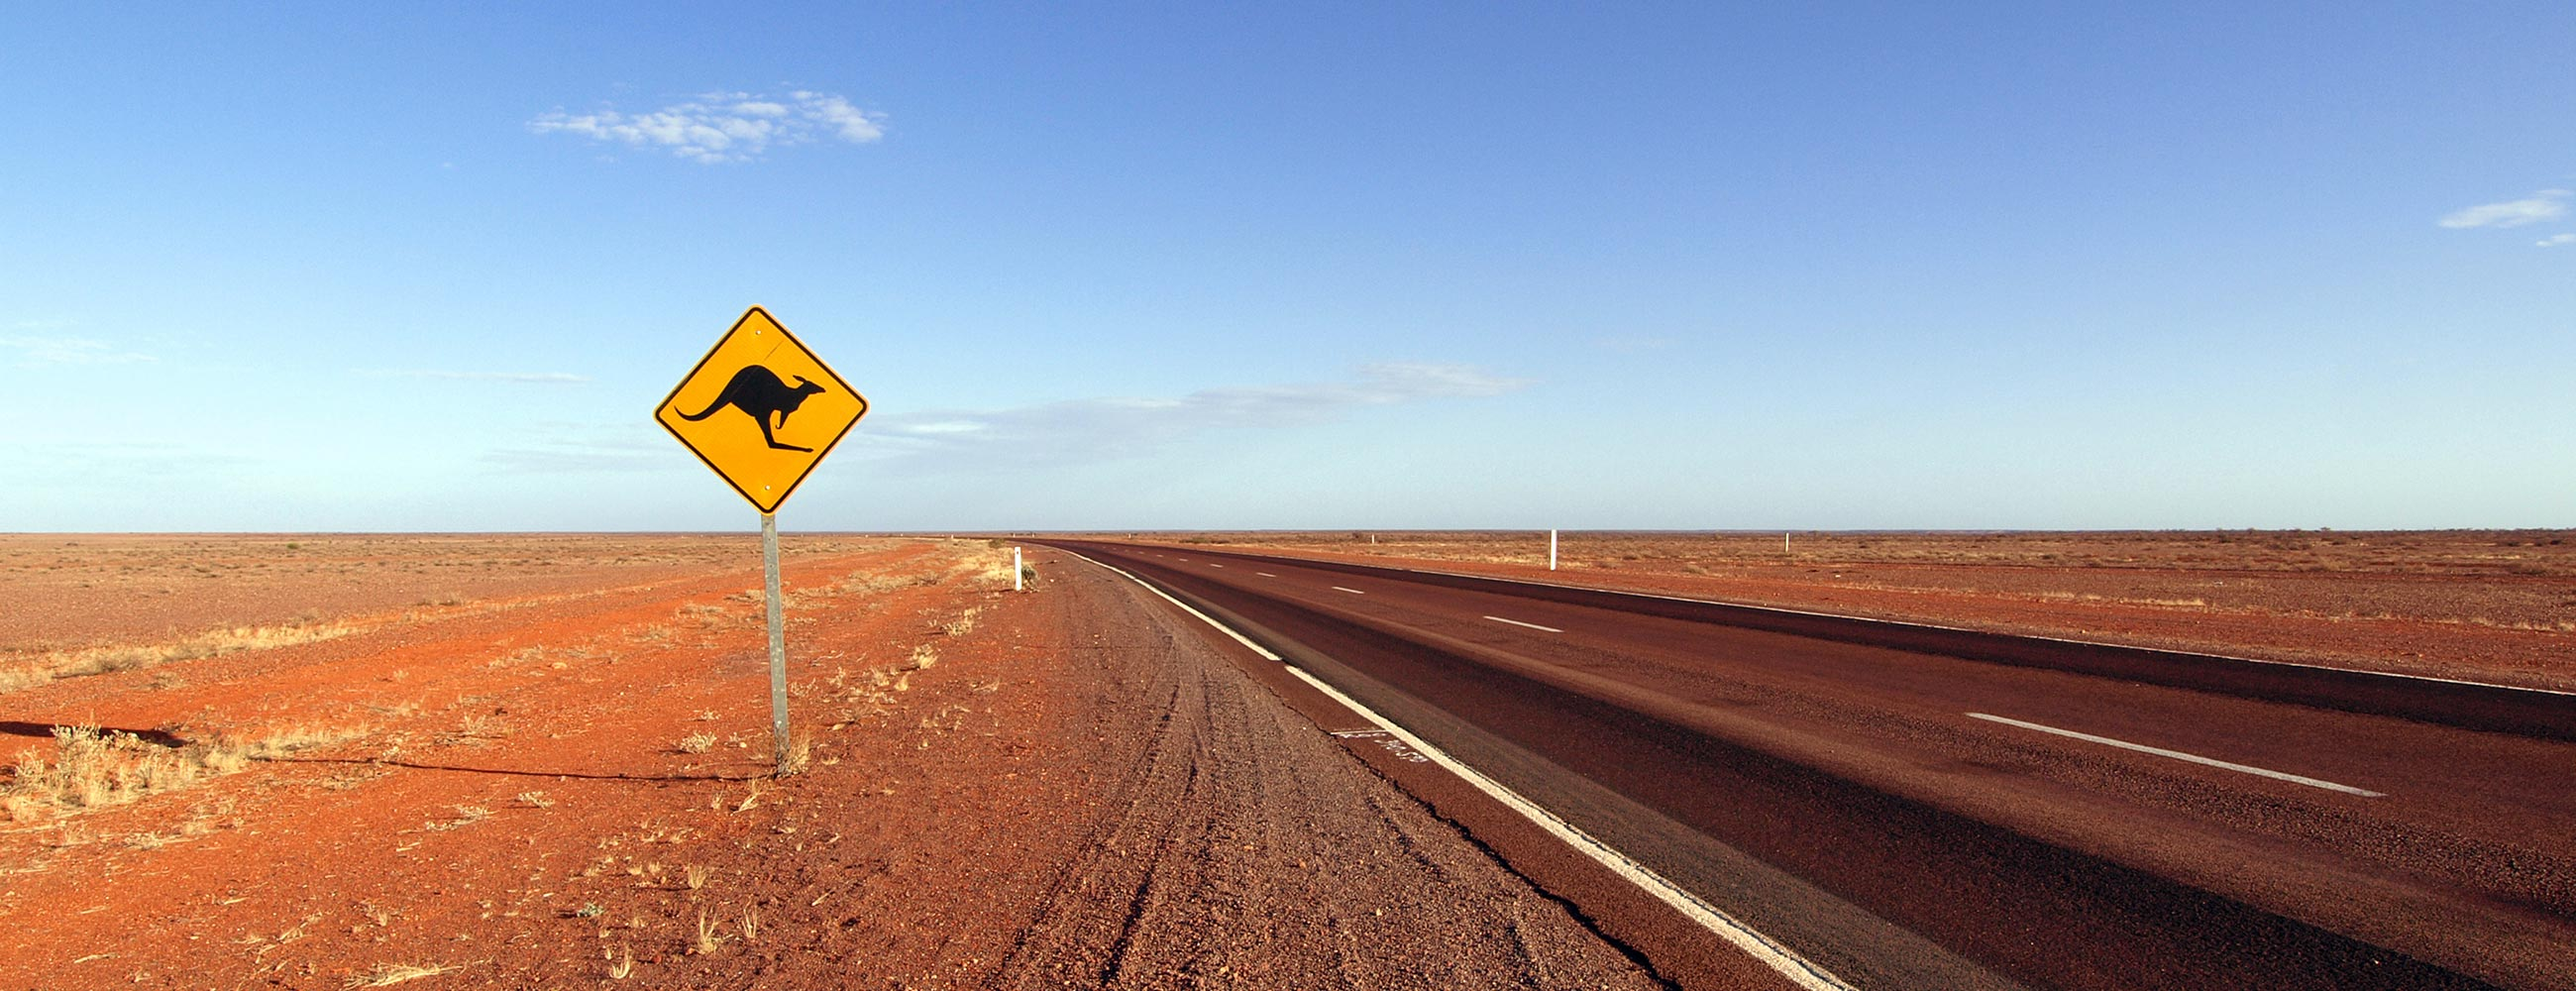 Things-You-Learn-When-You-Live-In-Outback-Australia-hero